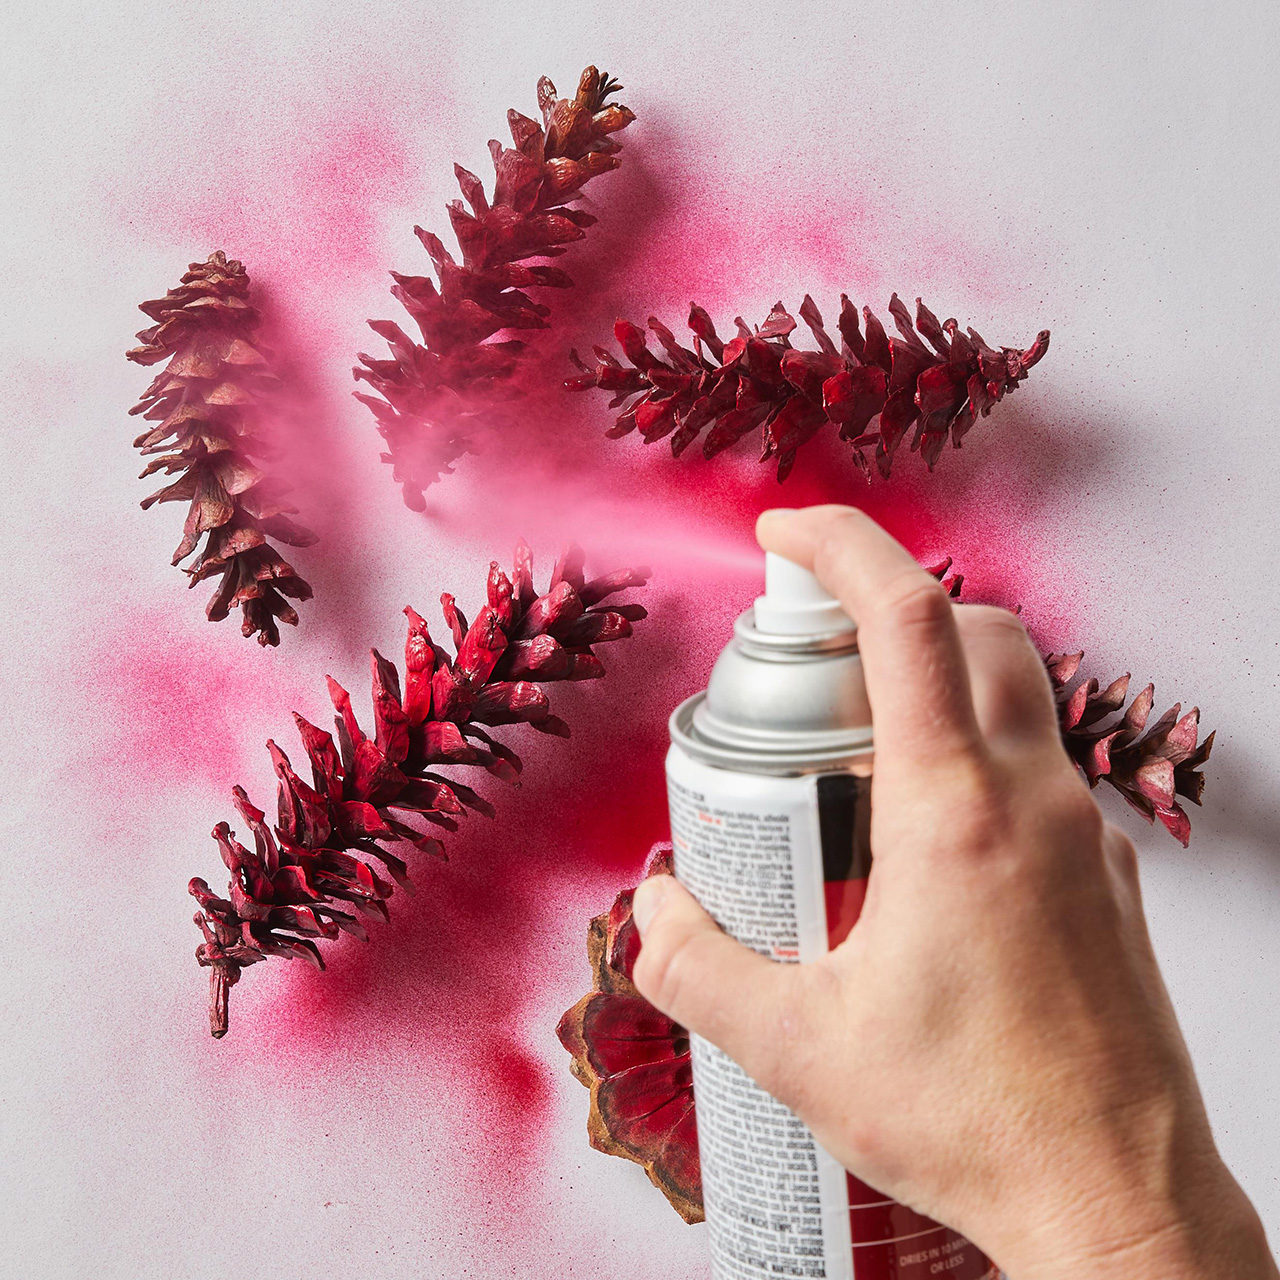 pine cones being sprayed with pink paint